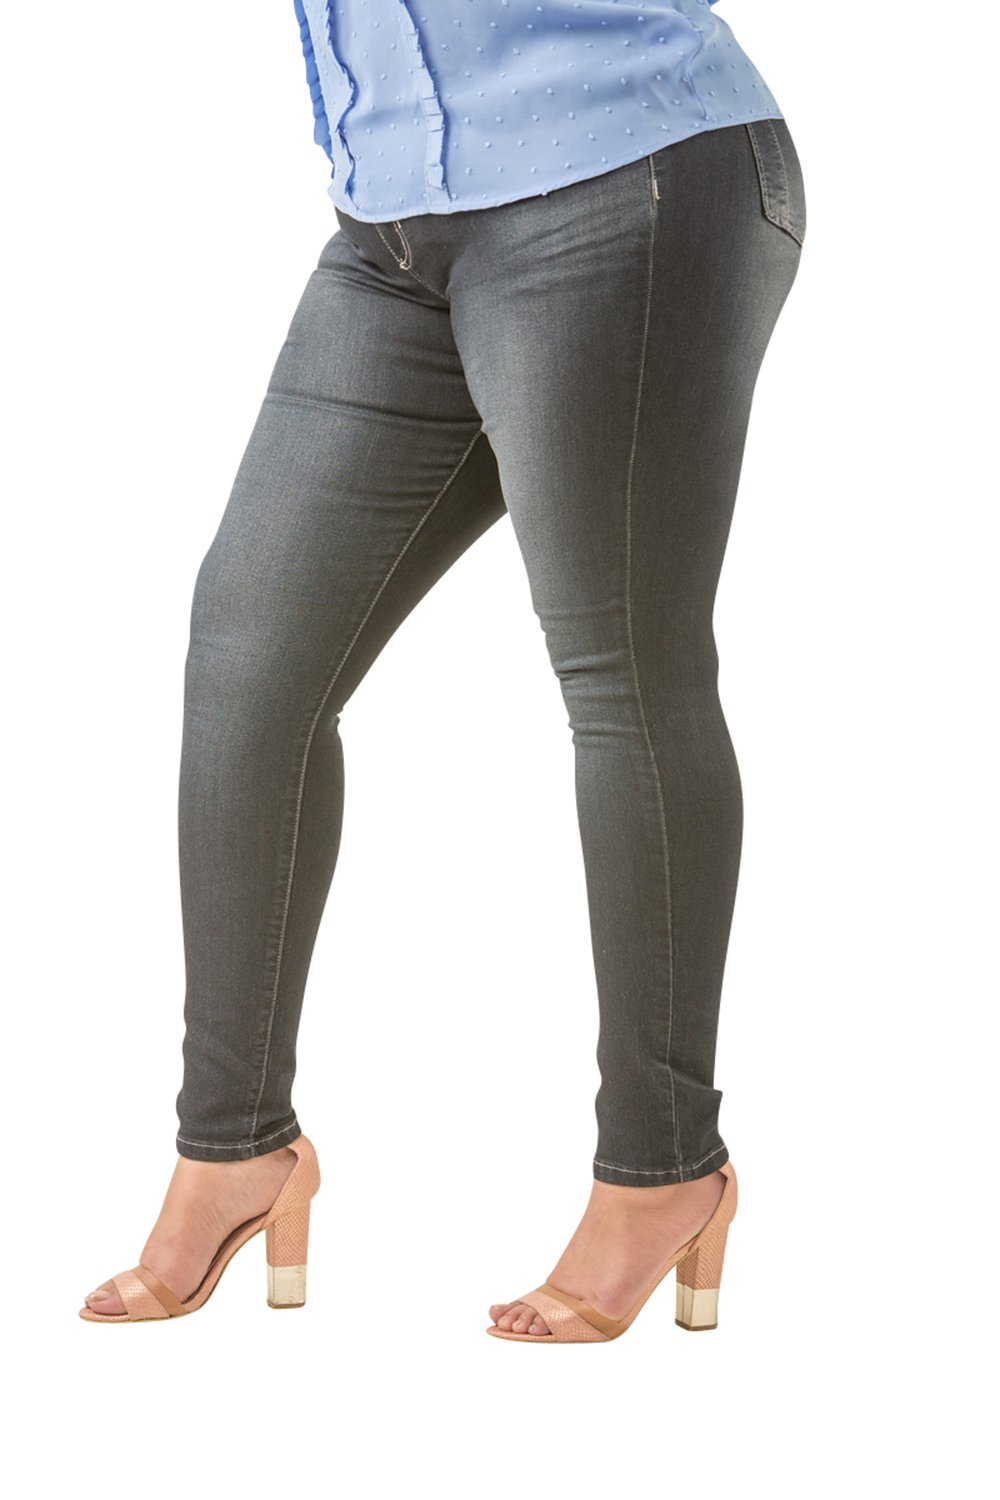 Poetic Justice Plus Size Women's Curvy Fit Stretch Denim Basic Blasted Skinny Jeans Size 16R x 31Plus Size